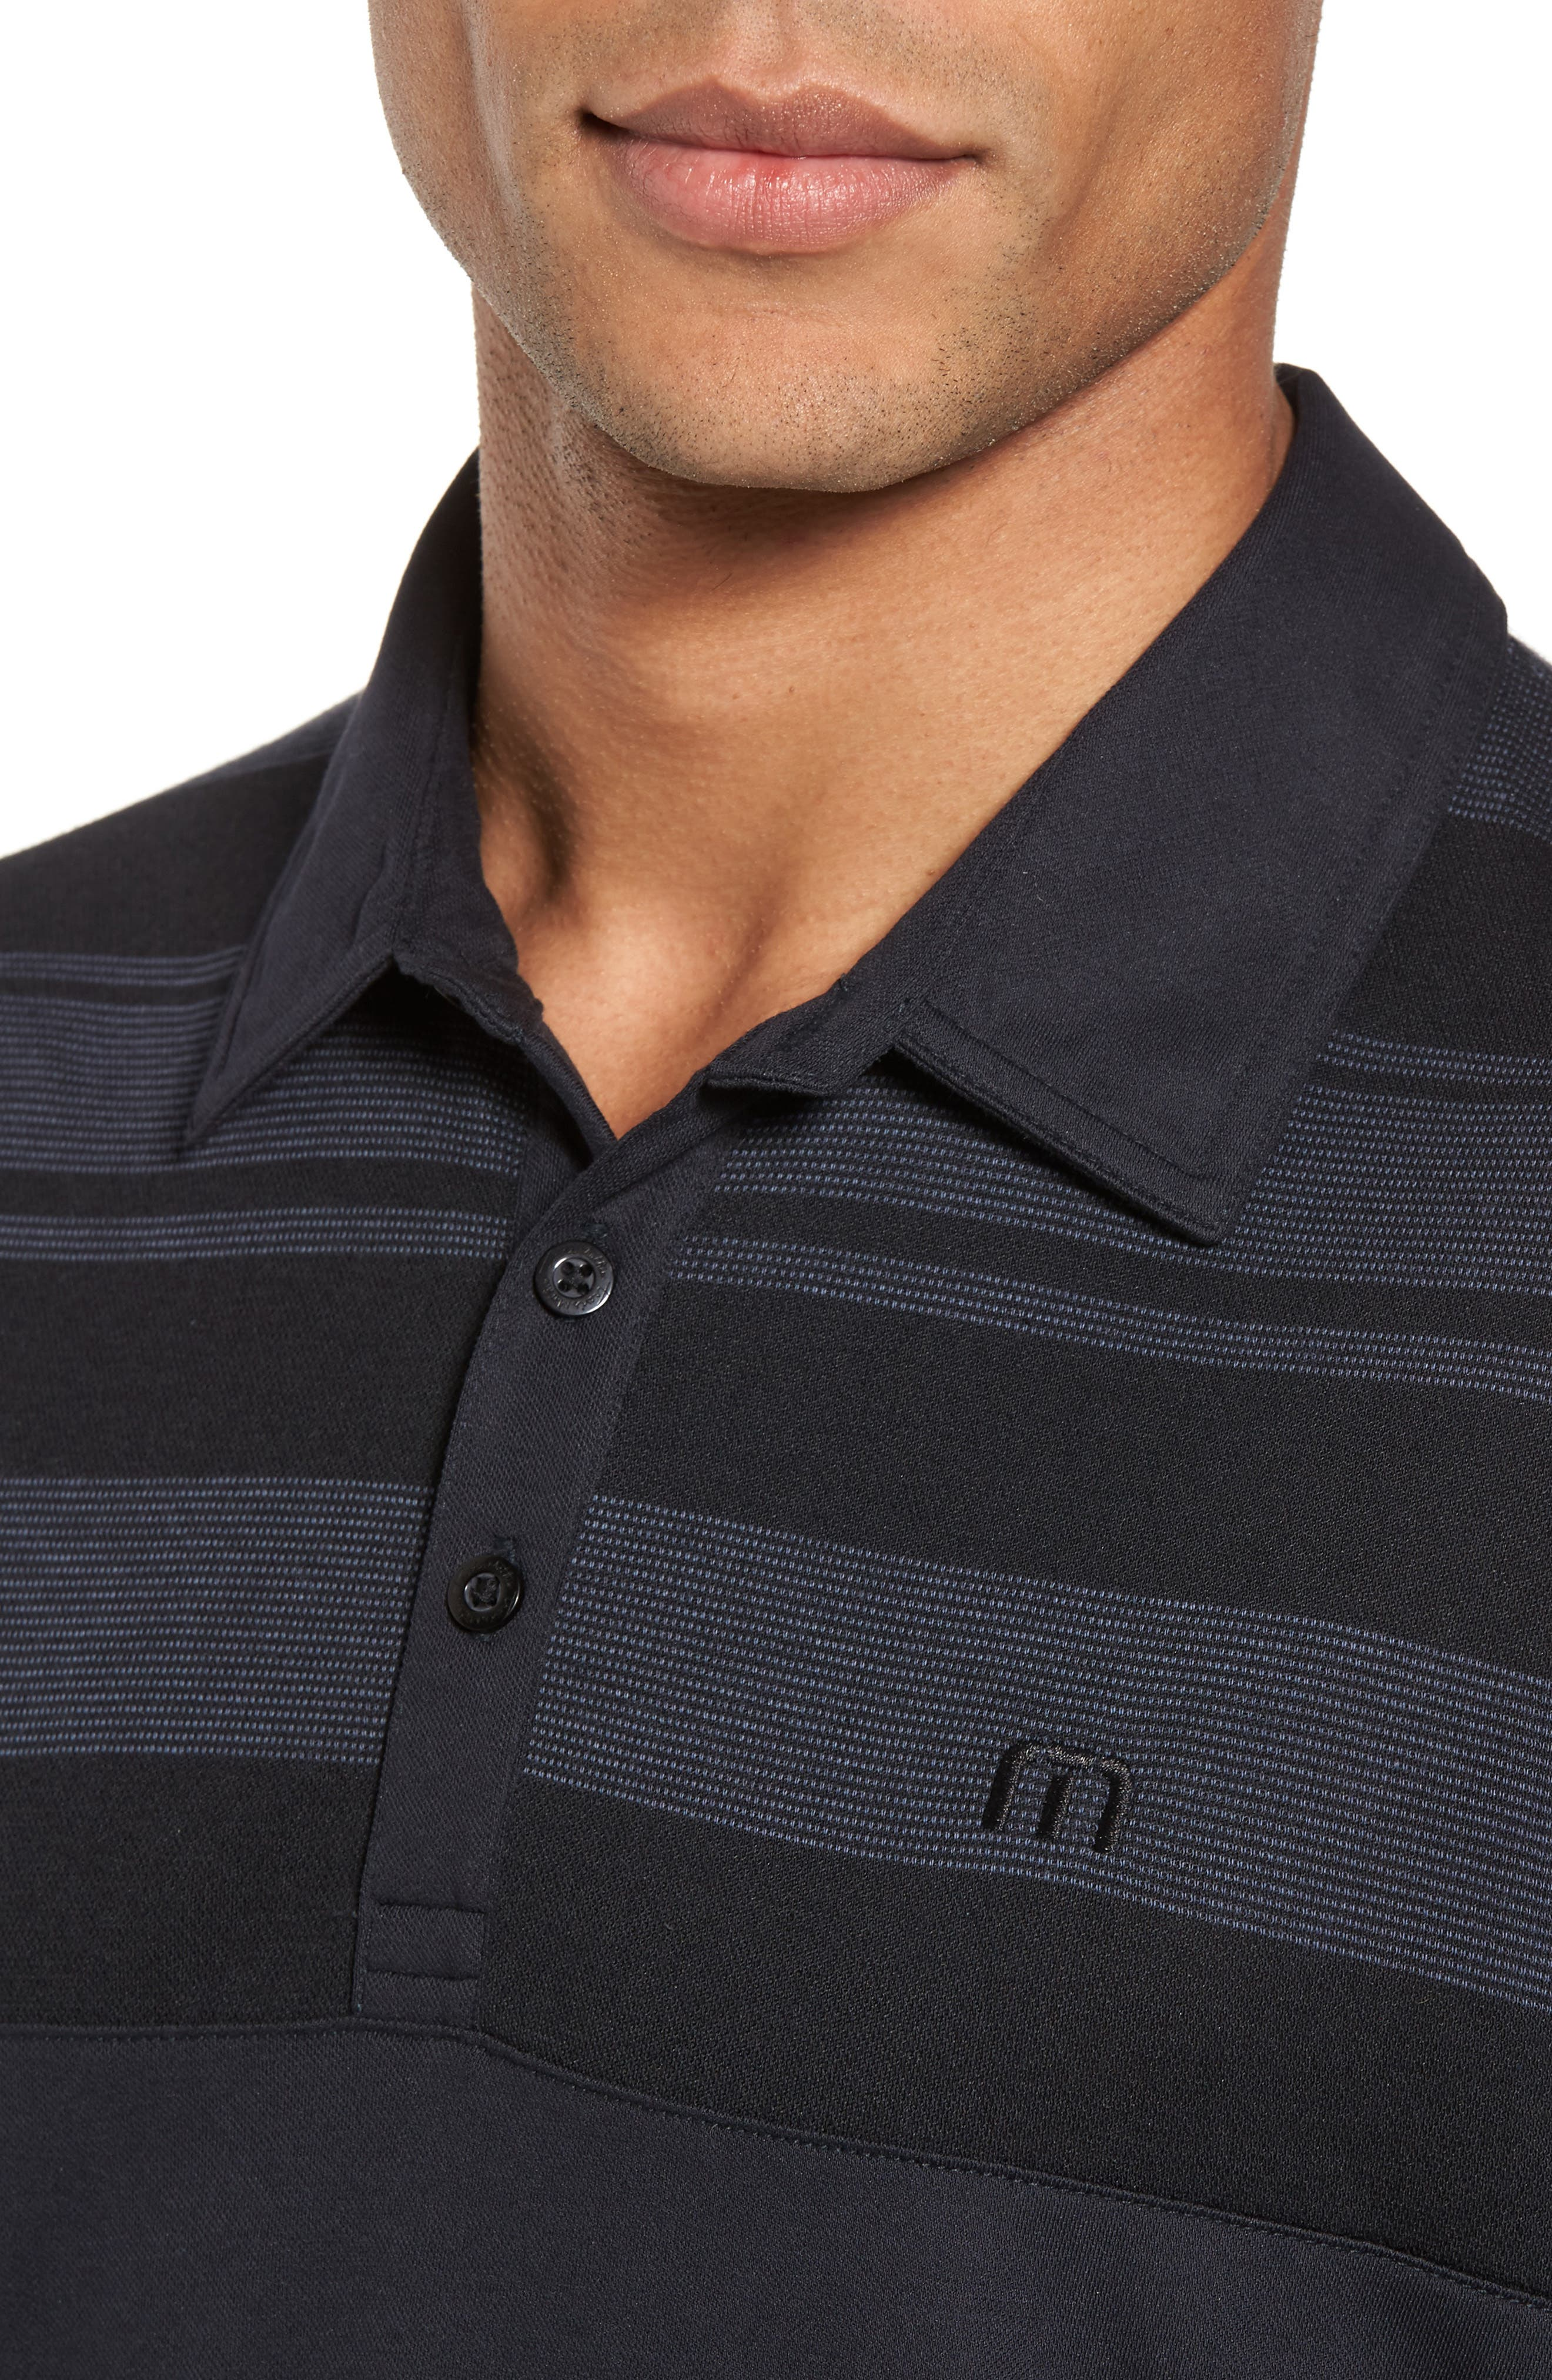 Alternate Image 4  - Travis Mathew Sweet Teets Jacquard Detail Polo